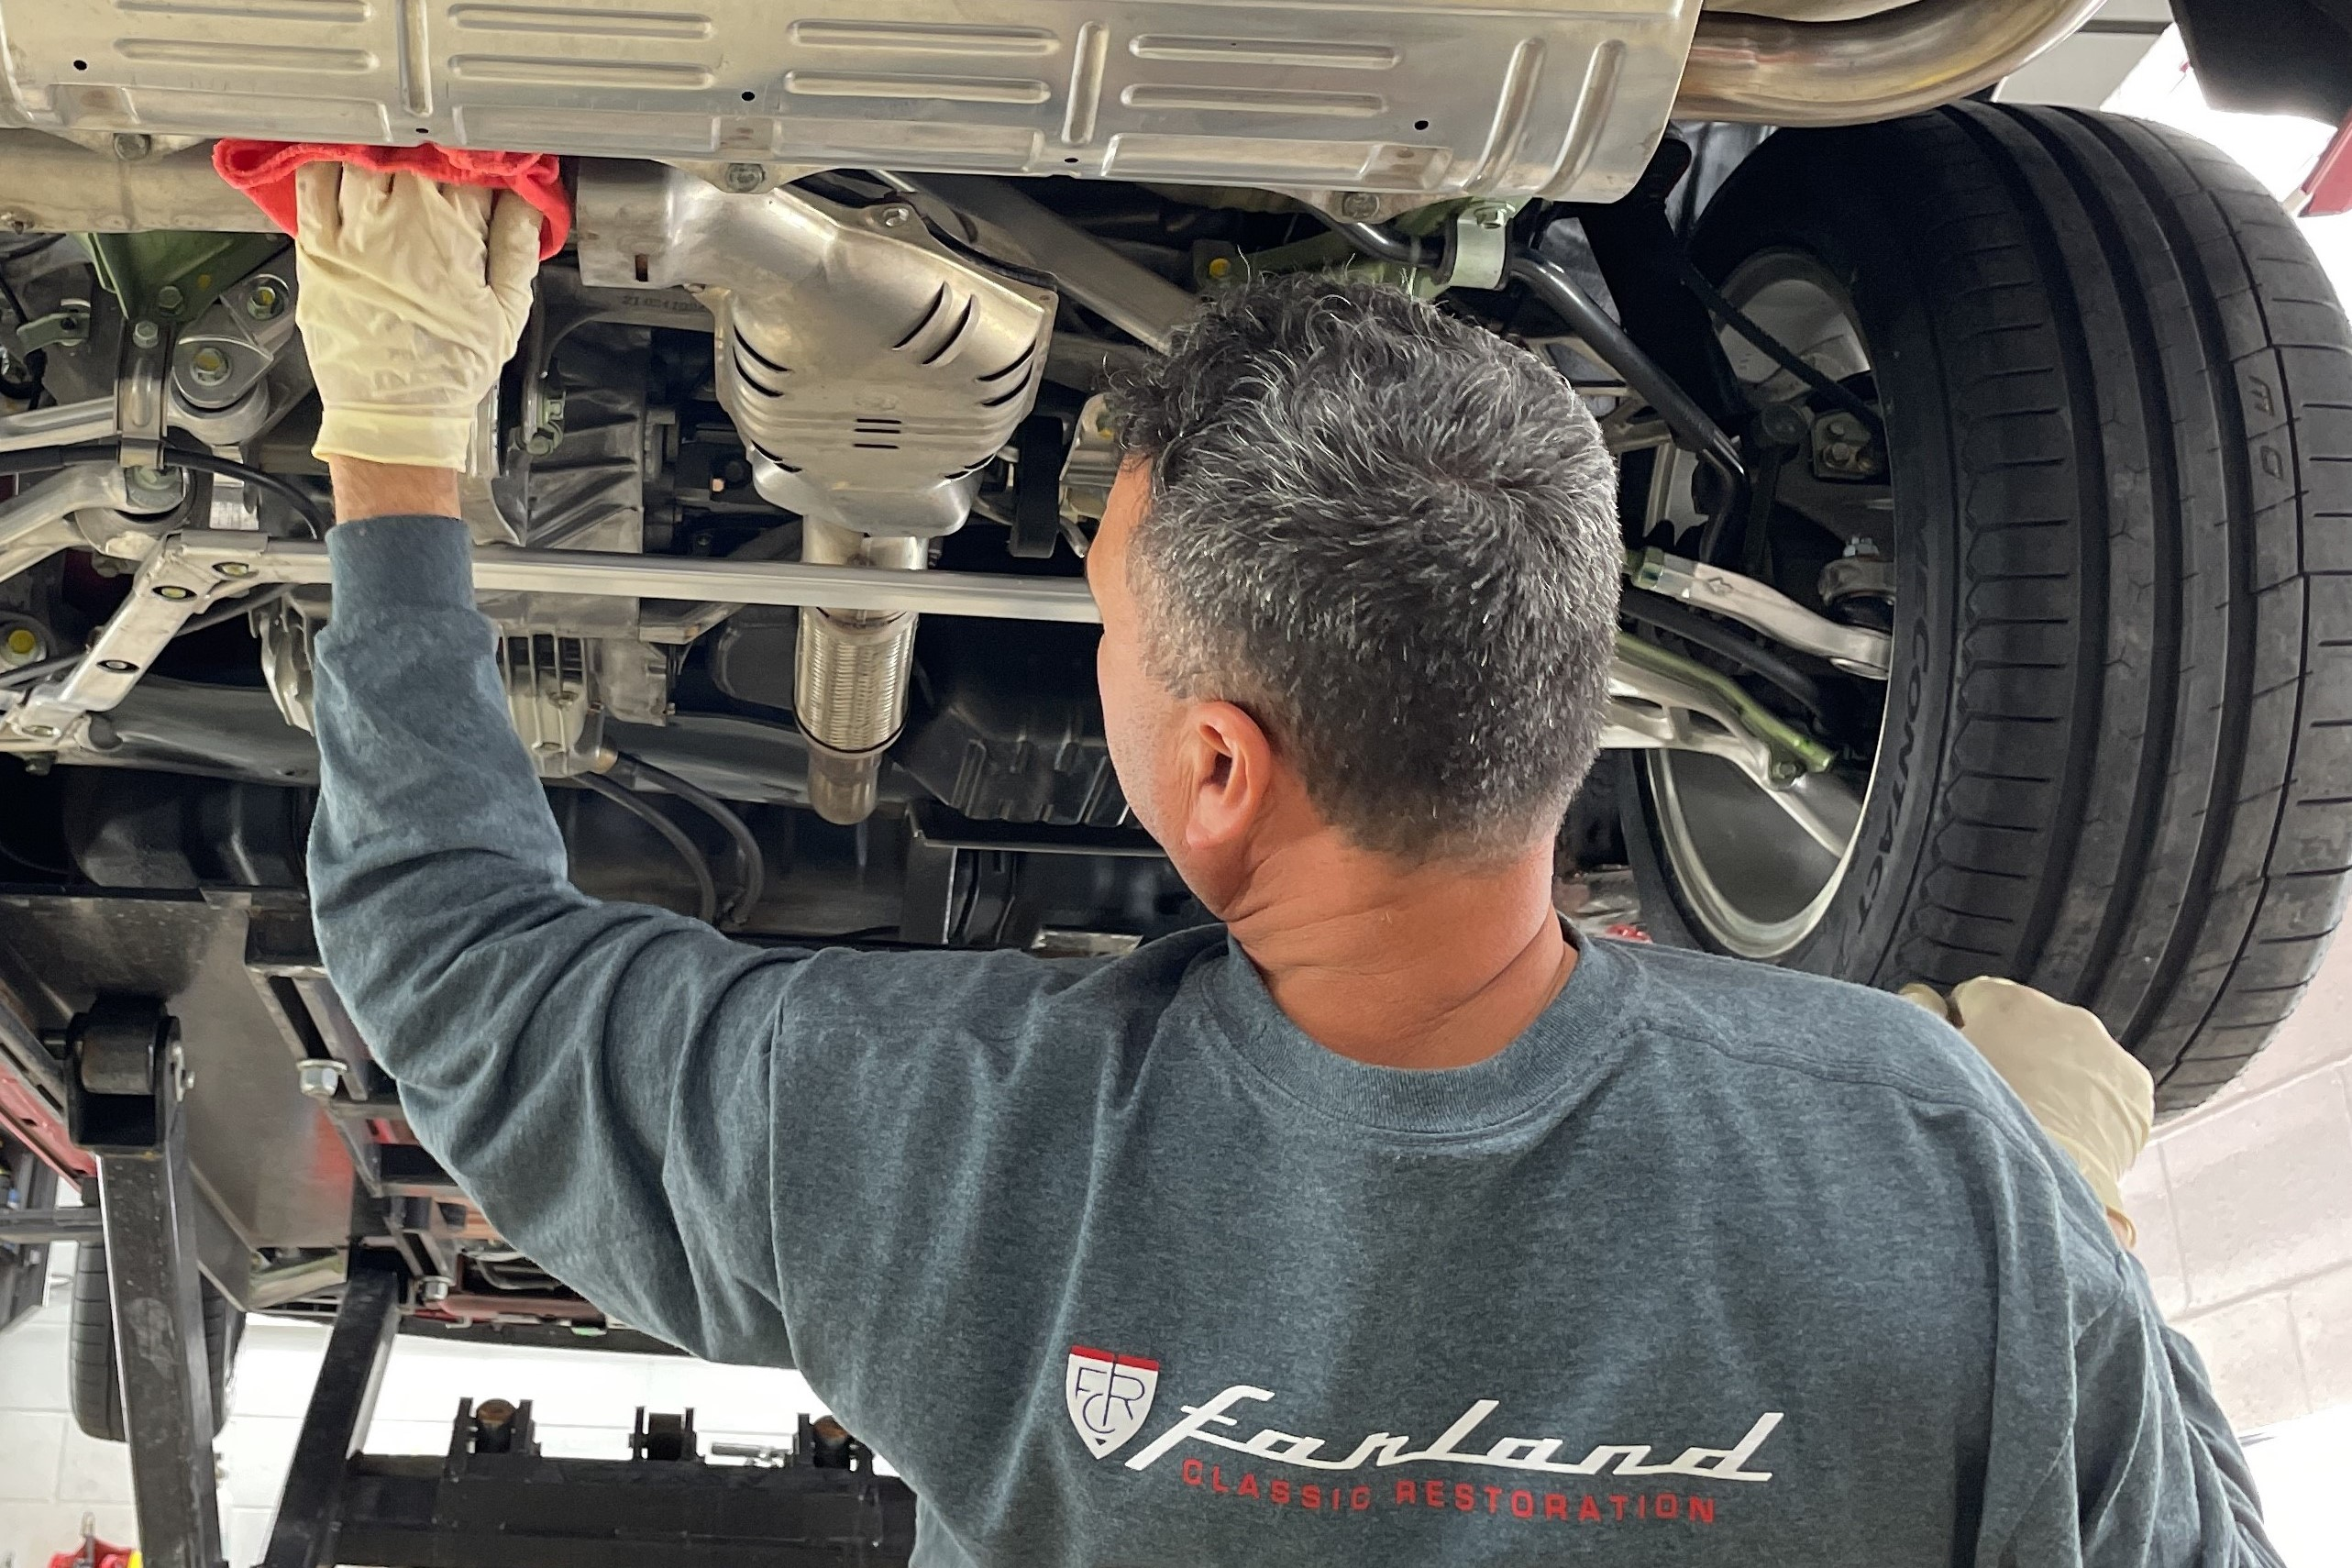 Jorge Cleaning  Acura NSX - Farland Classic Restoration